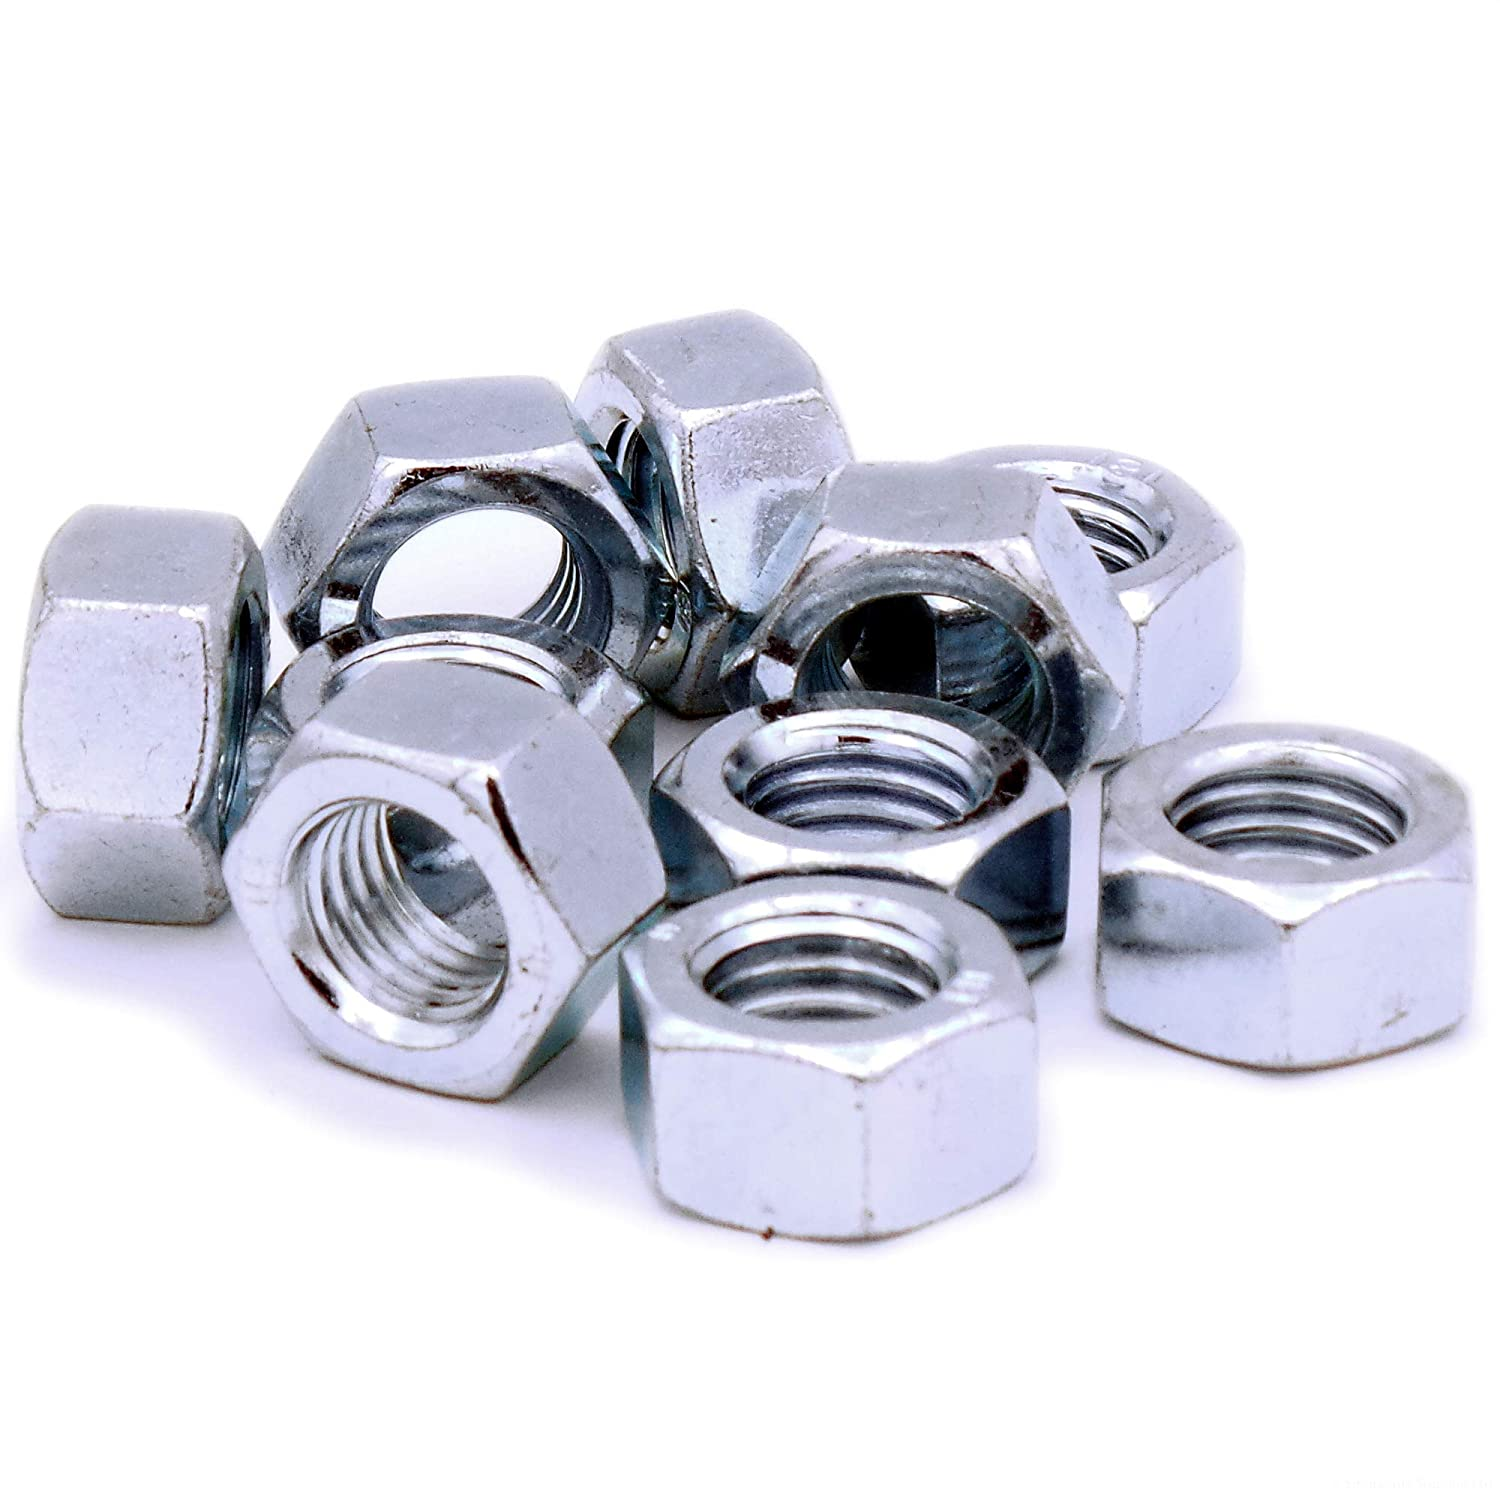 M4 (4mm) Hex Nuts - Steel (Pack of 100) Singularity Supplies Ltd